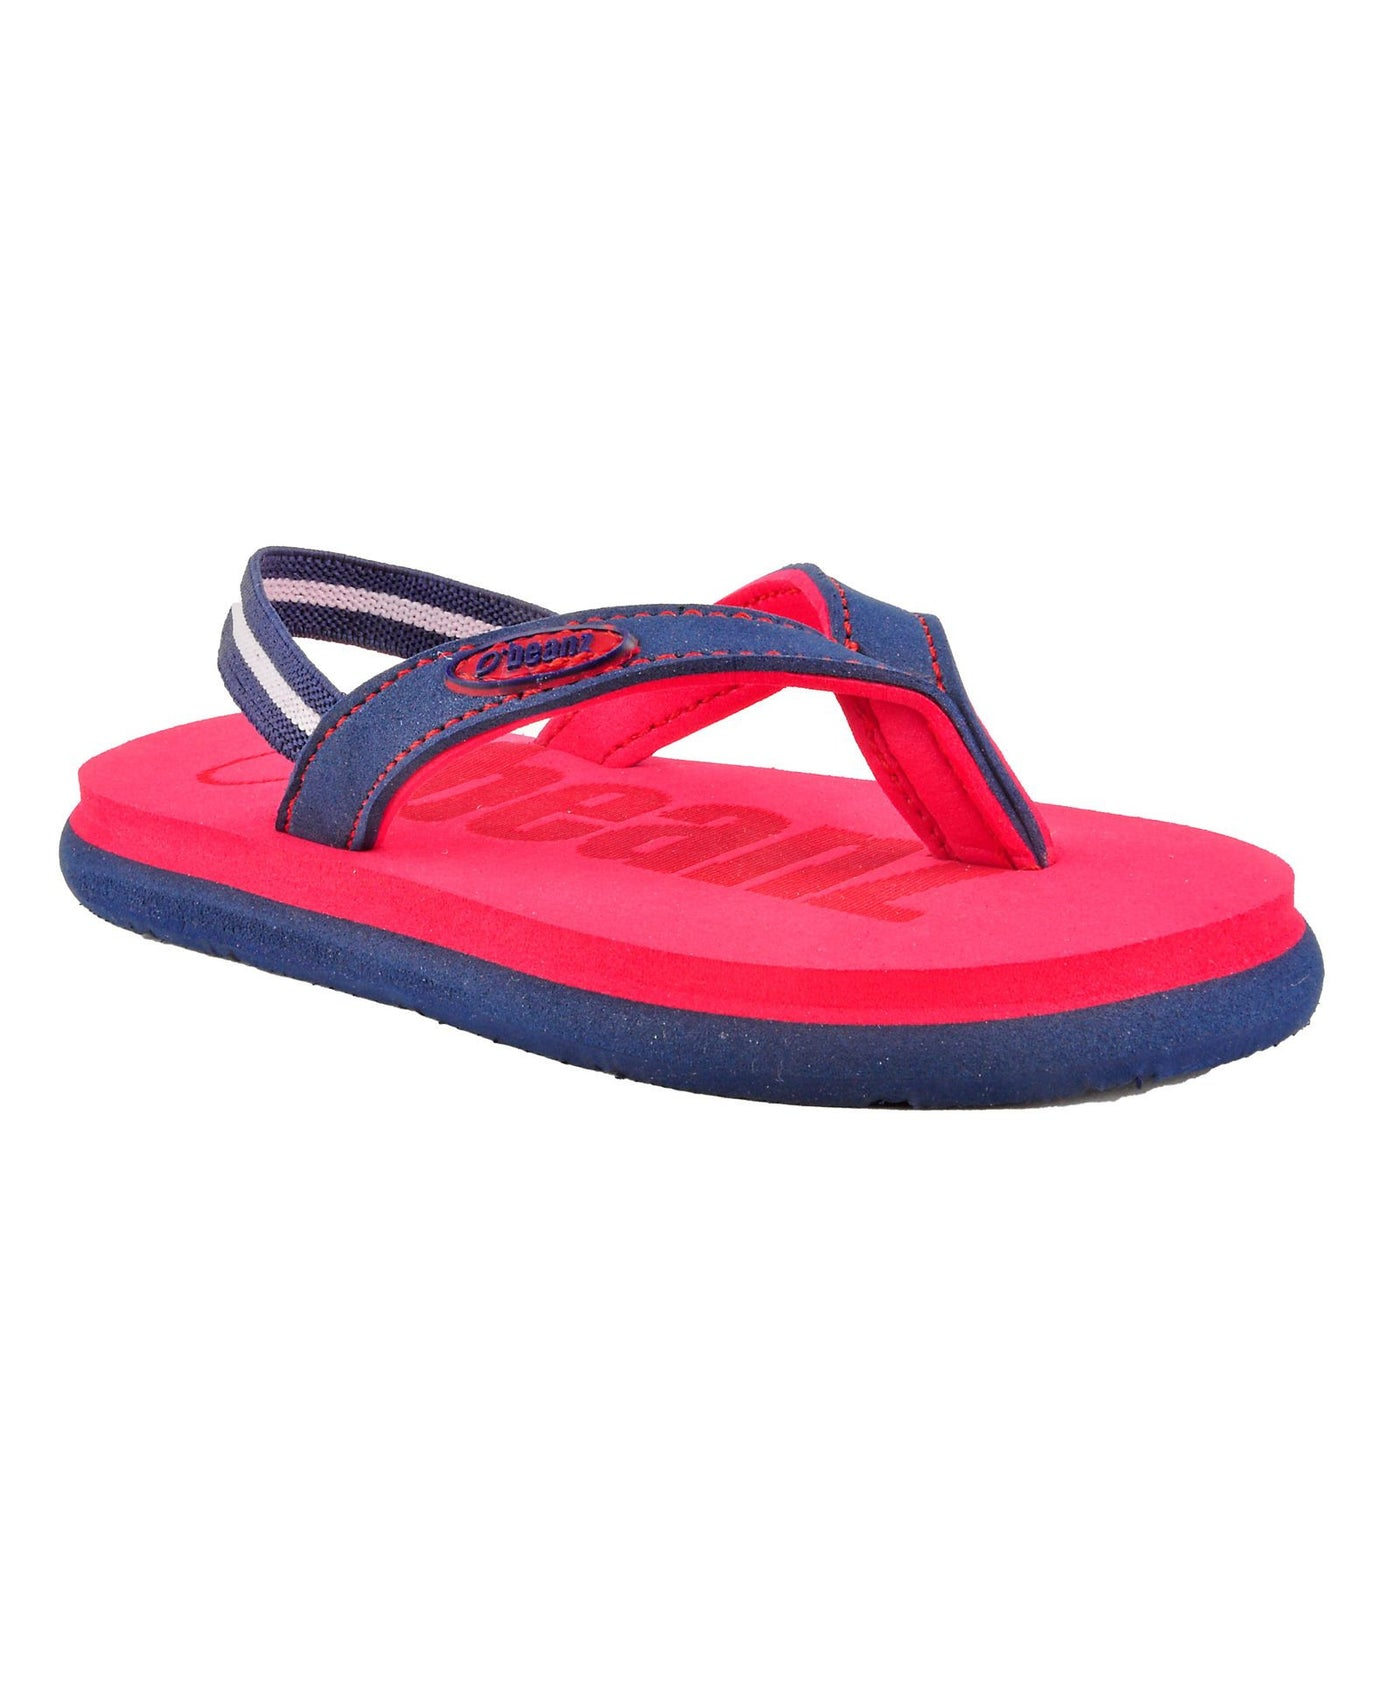 f83c1fc93a8e8c Beanz Carlin Red and Navy Flip Flops With Back Strap – Munchkinz